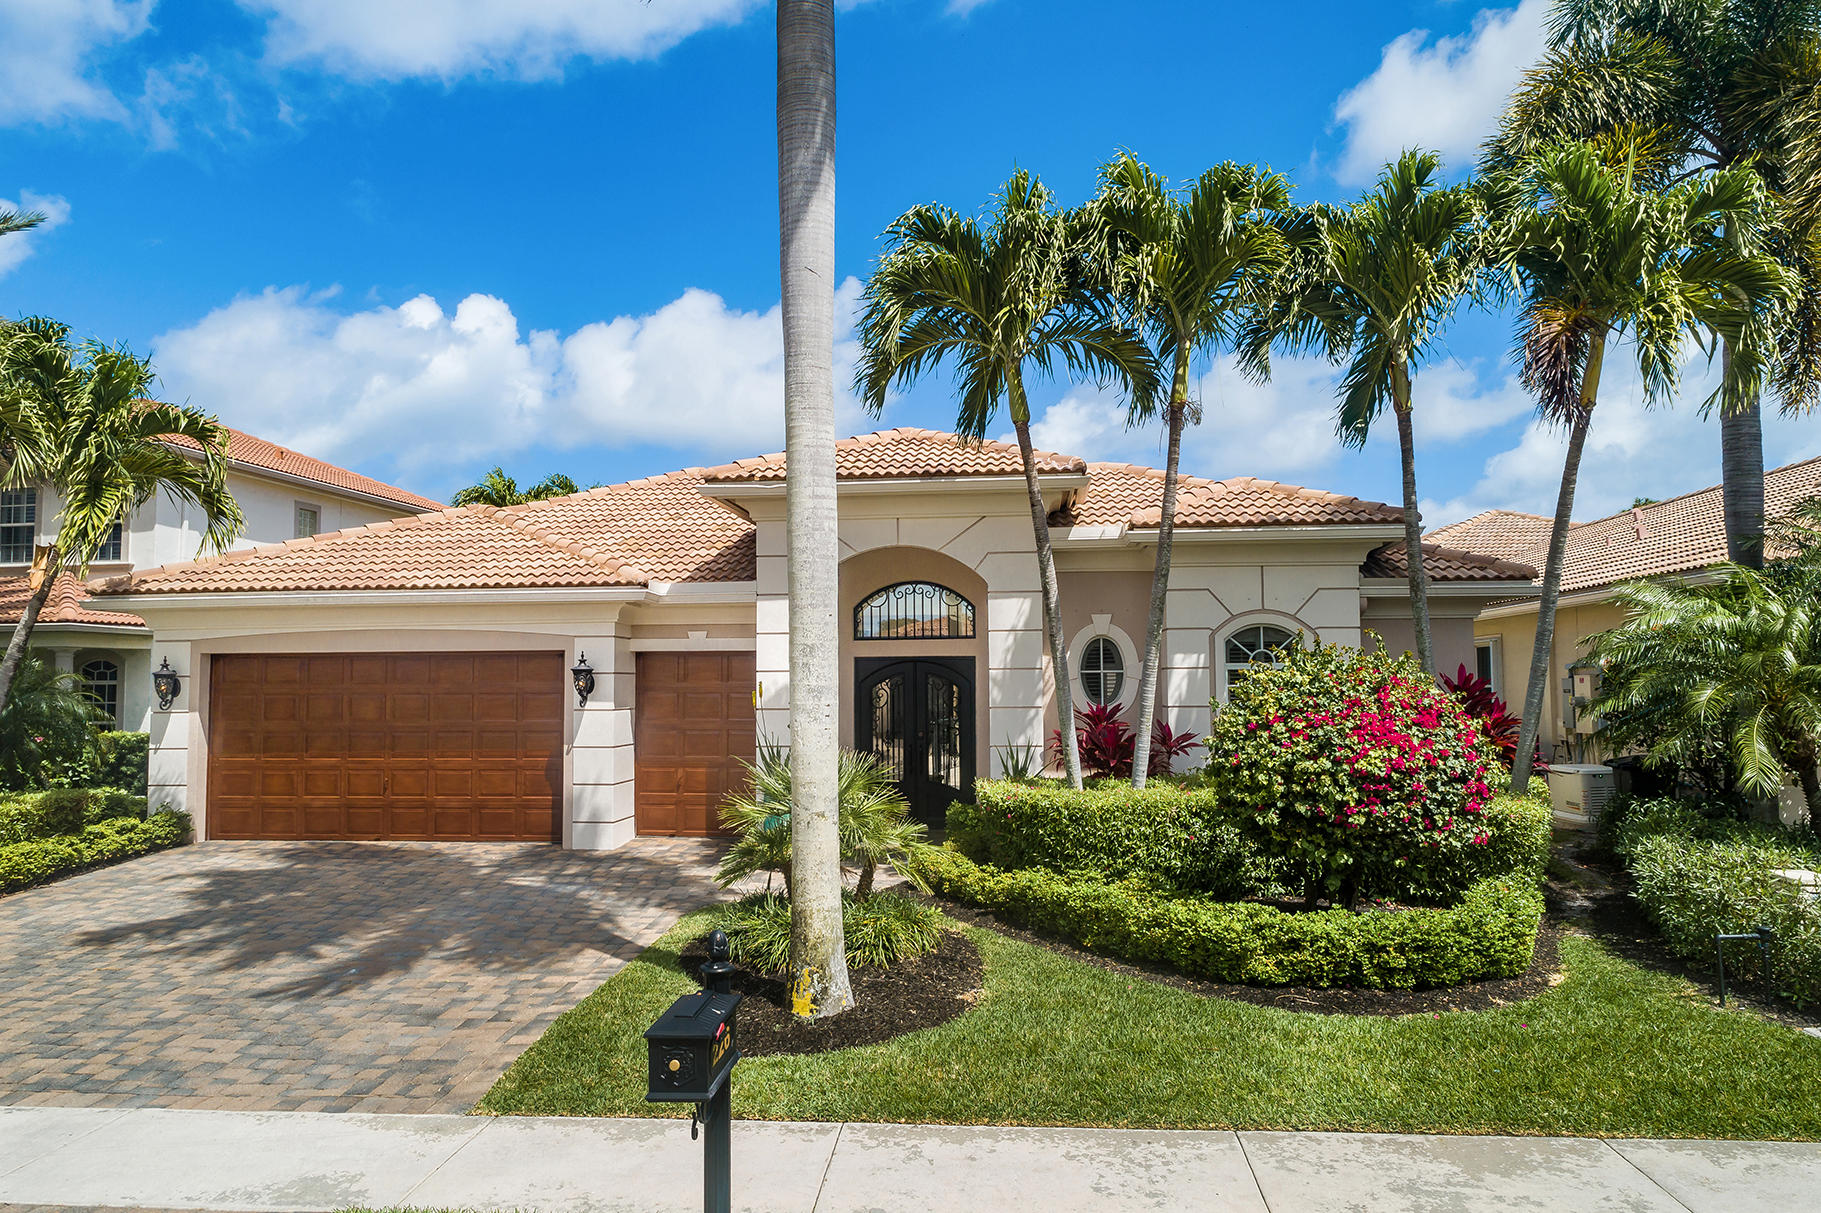 226 Montant Dr, Palm Beach Gardens, Florida 33410, 4 Bedrooms Bedrooms, ,3.1 BathroomsBathrooms,F,Single family,Montant Dr,RX-10611836